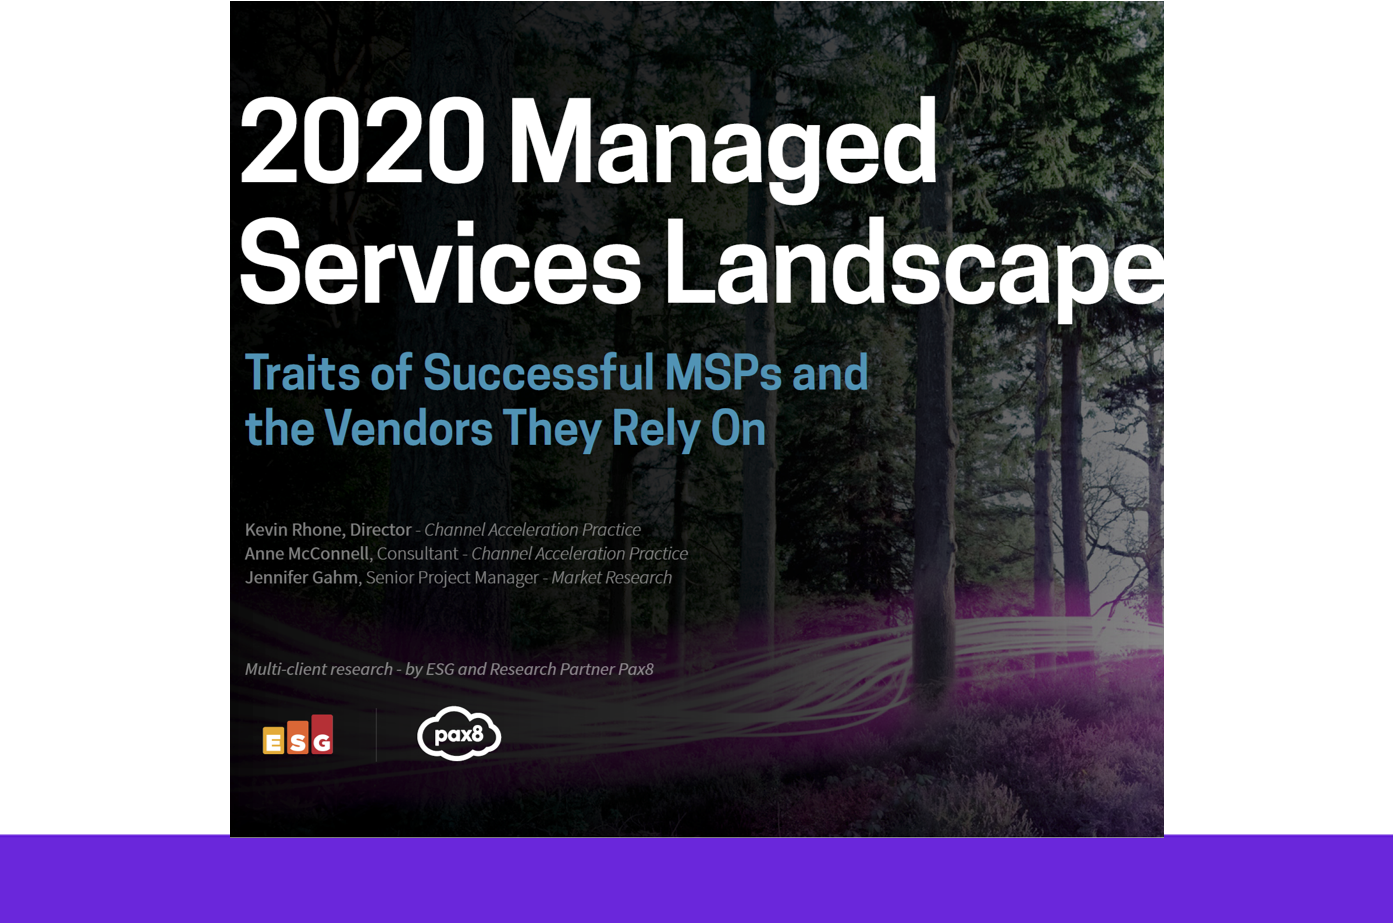 2020 Managed Services Landscape: Traits of Successful MSPs and the Vendors They Rely On